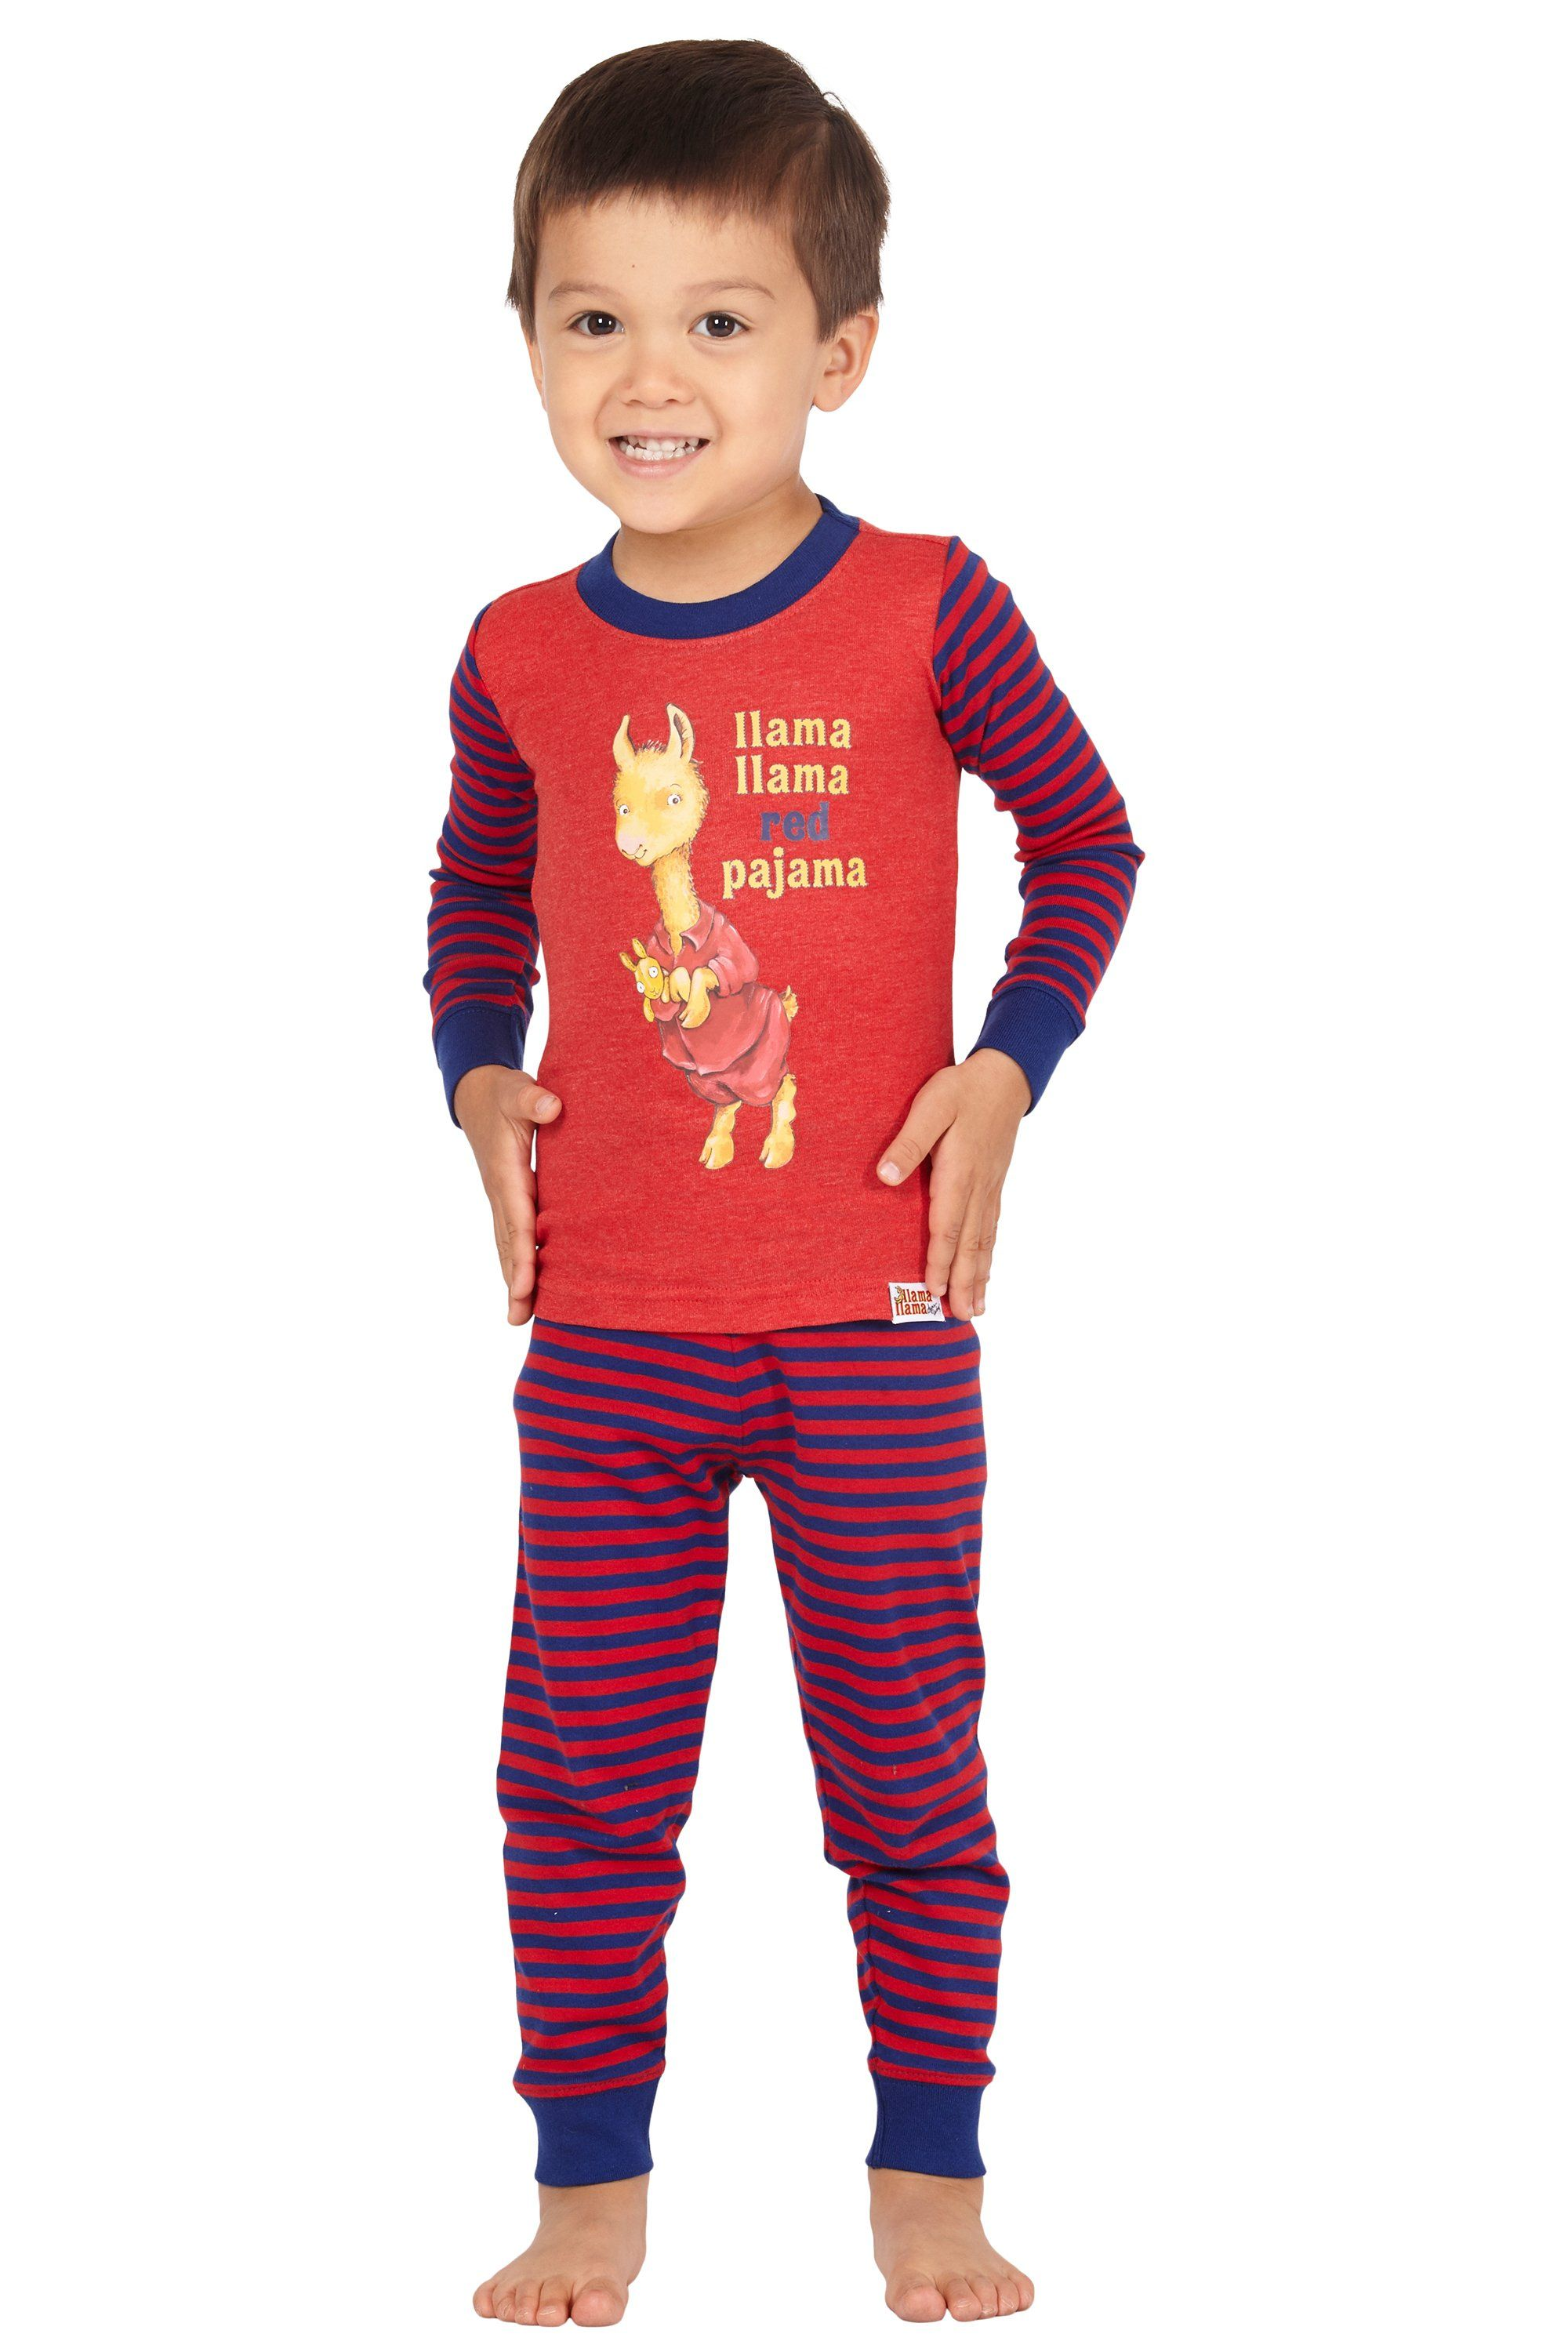 Llama Llama Red Pajama Toddler Pajama Set